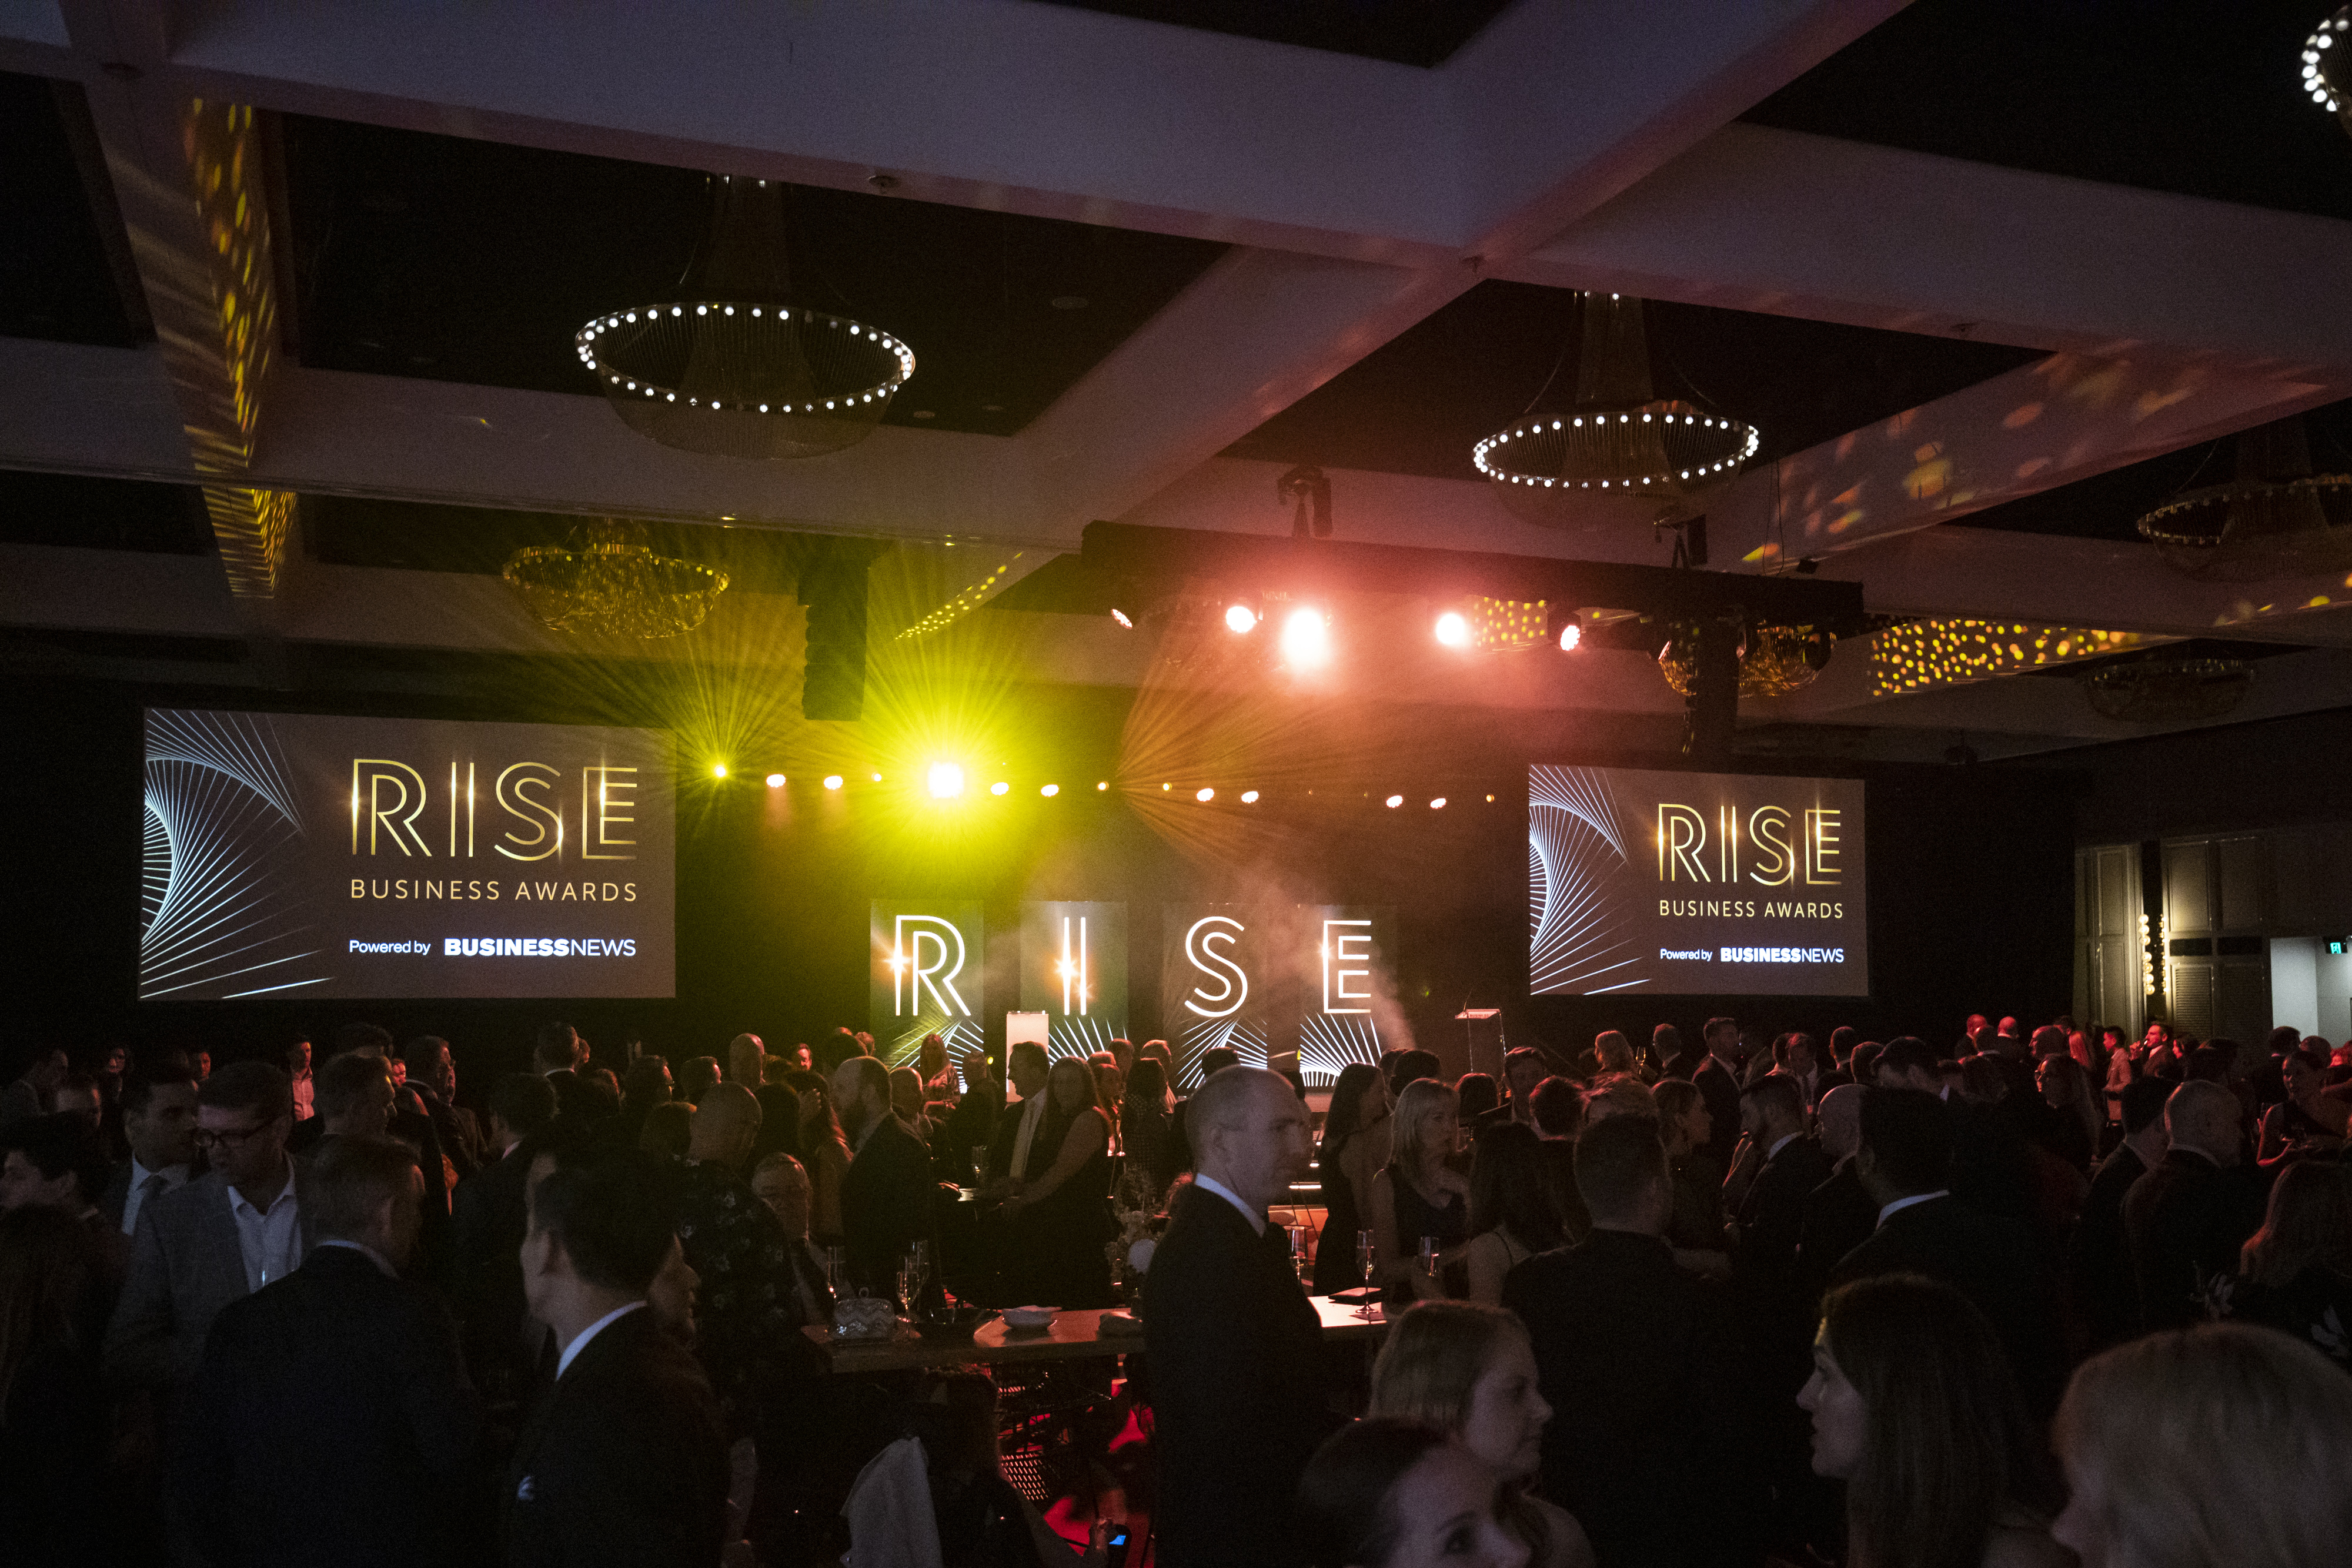 RISE Business Awards 2020